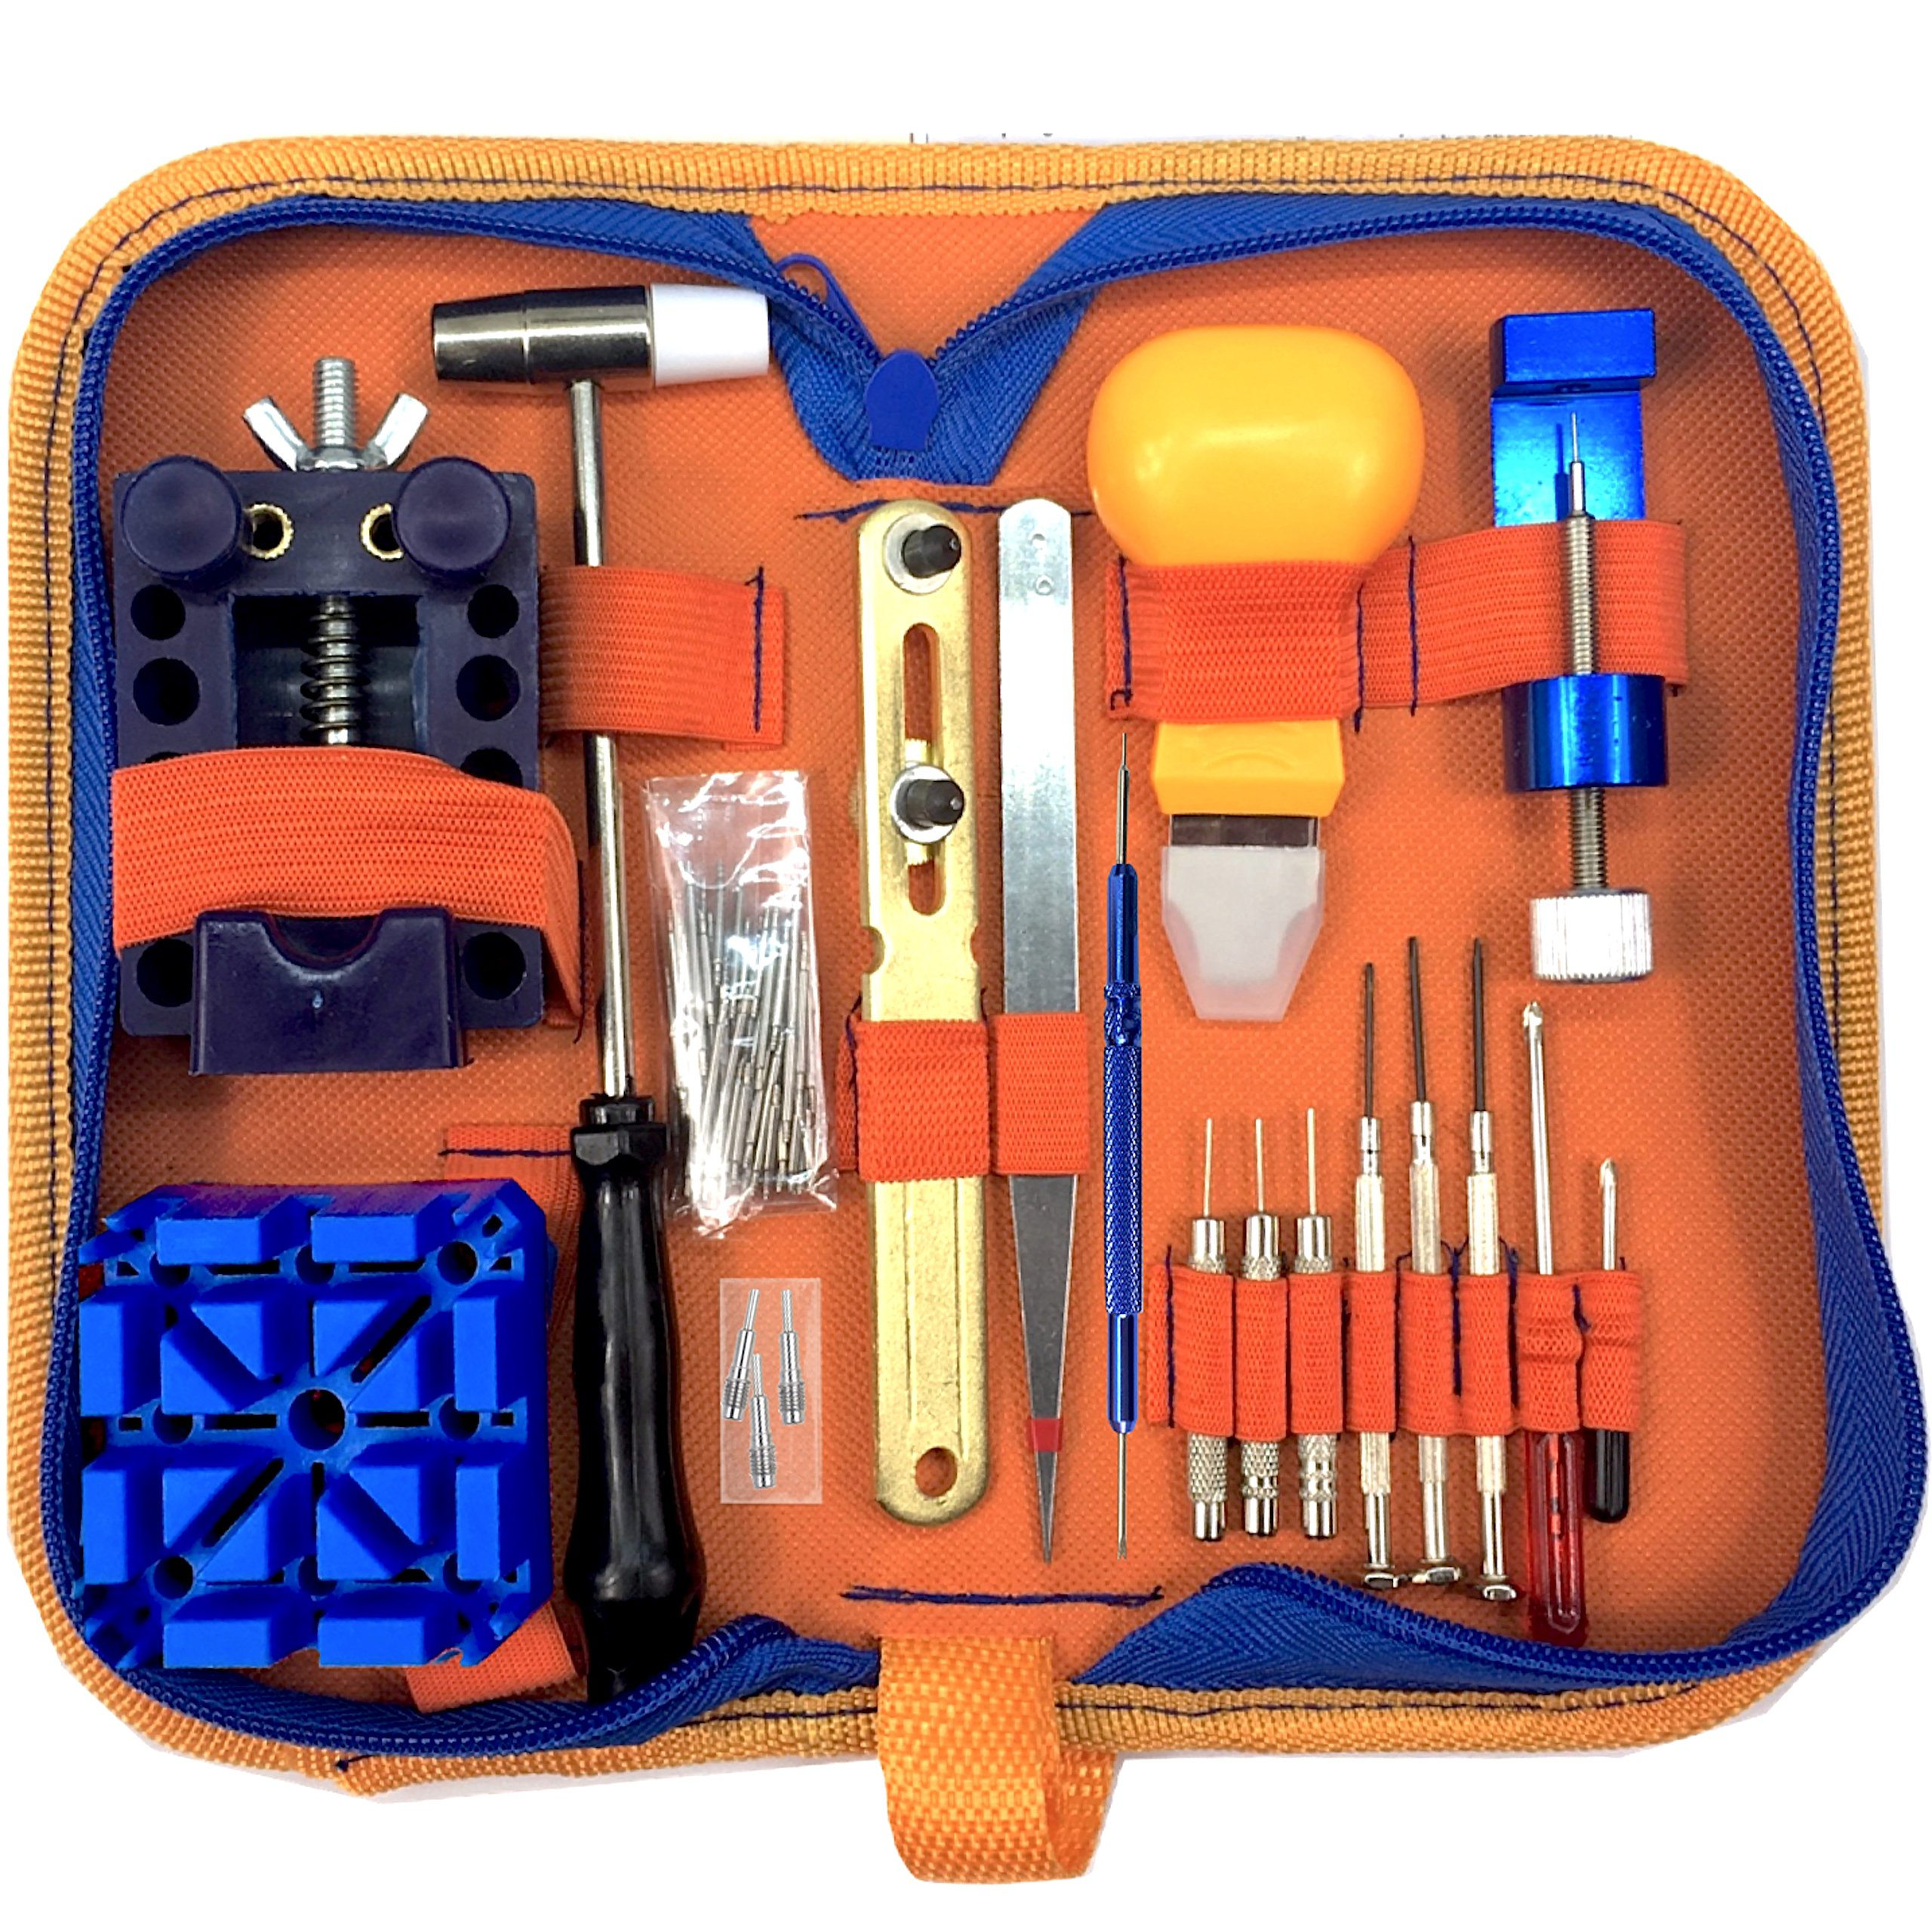 QwikFixxer Watch Repair Kit: 16 Universal Tools, Case Wrench, Watch Band Tool; Plus Free Spring Bars